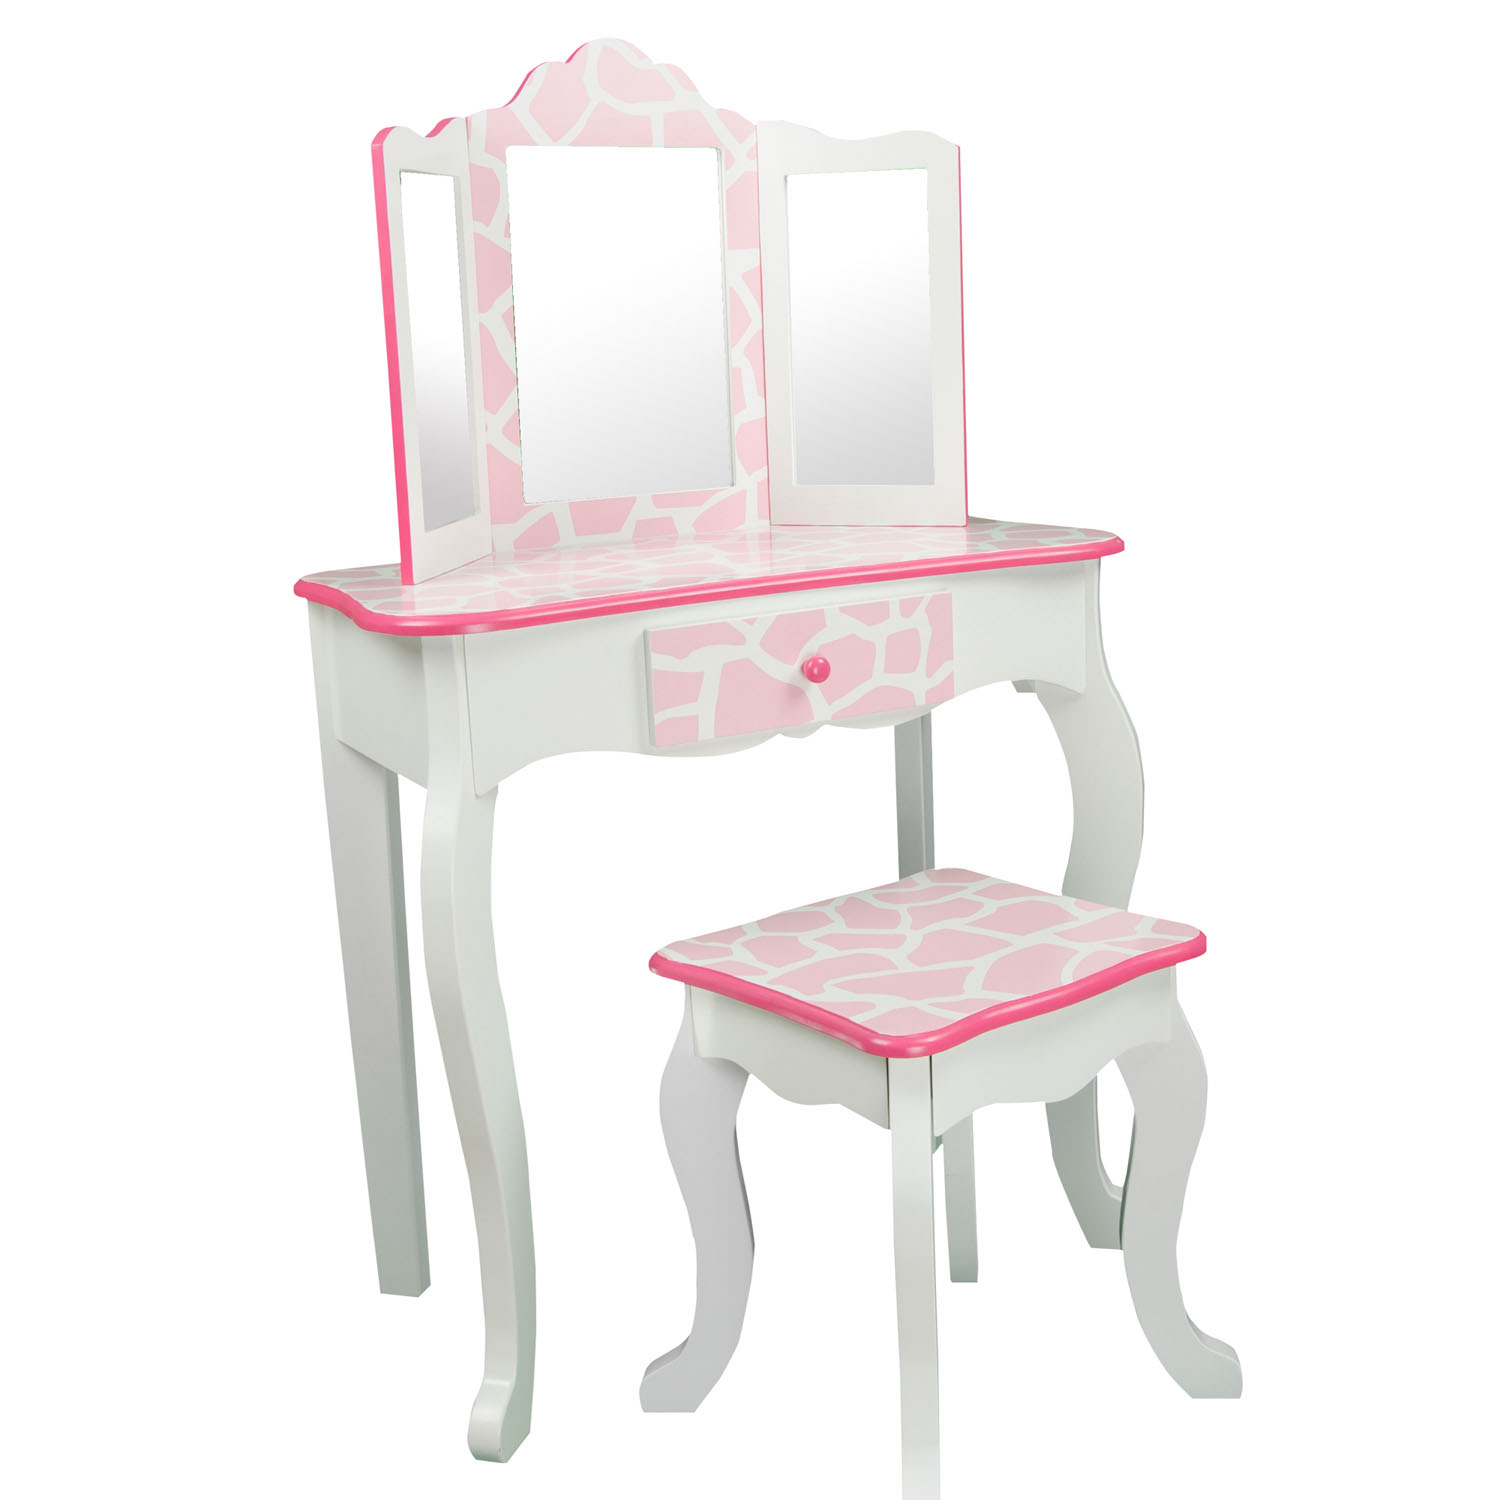 Teamson Kids Dollhouse FurnitureFashion Prints Vanity and Stool Set with Mirror - Giraffe (Baby Pink / White)